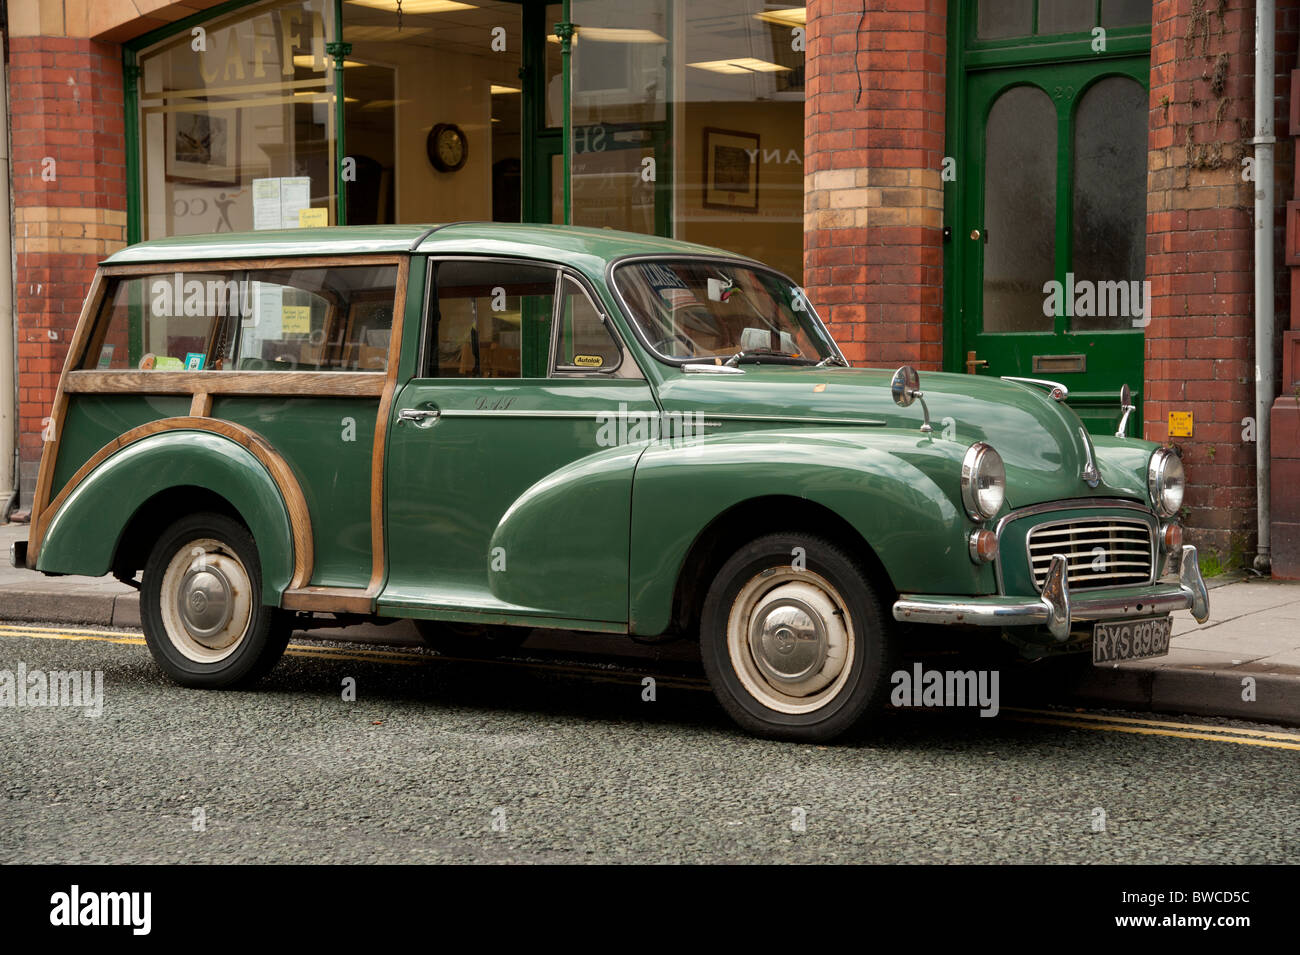 Communication on this topic: Morris Minor 1000 Traveller, morris-minor-1000-traveller/